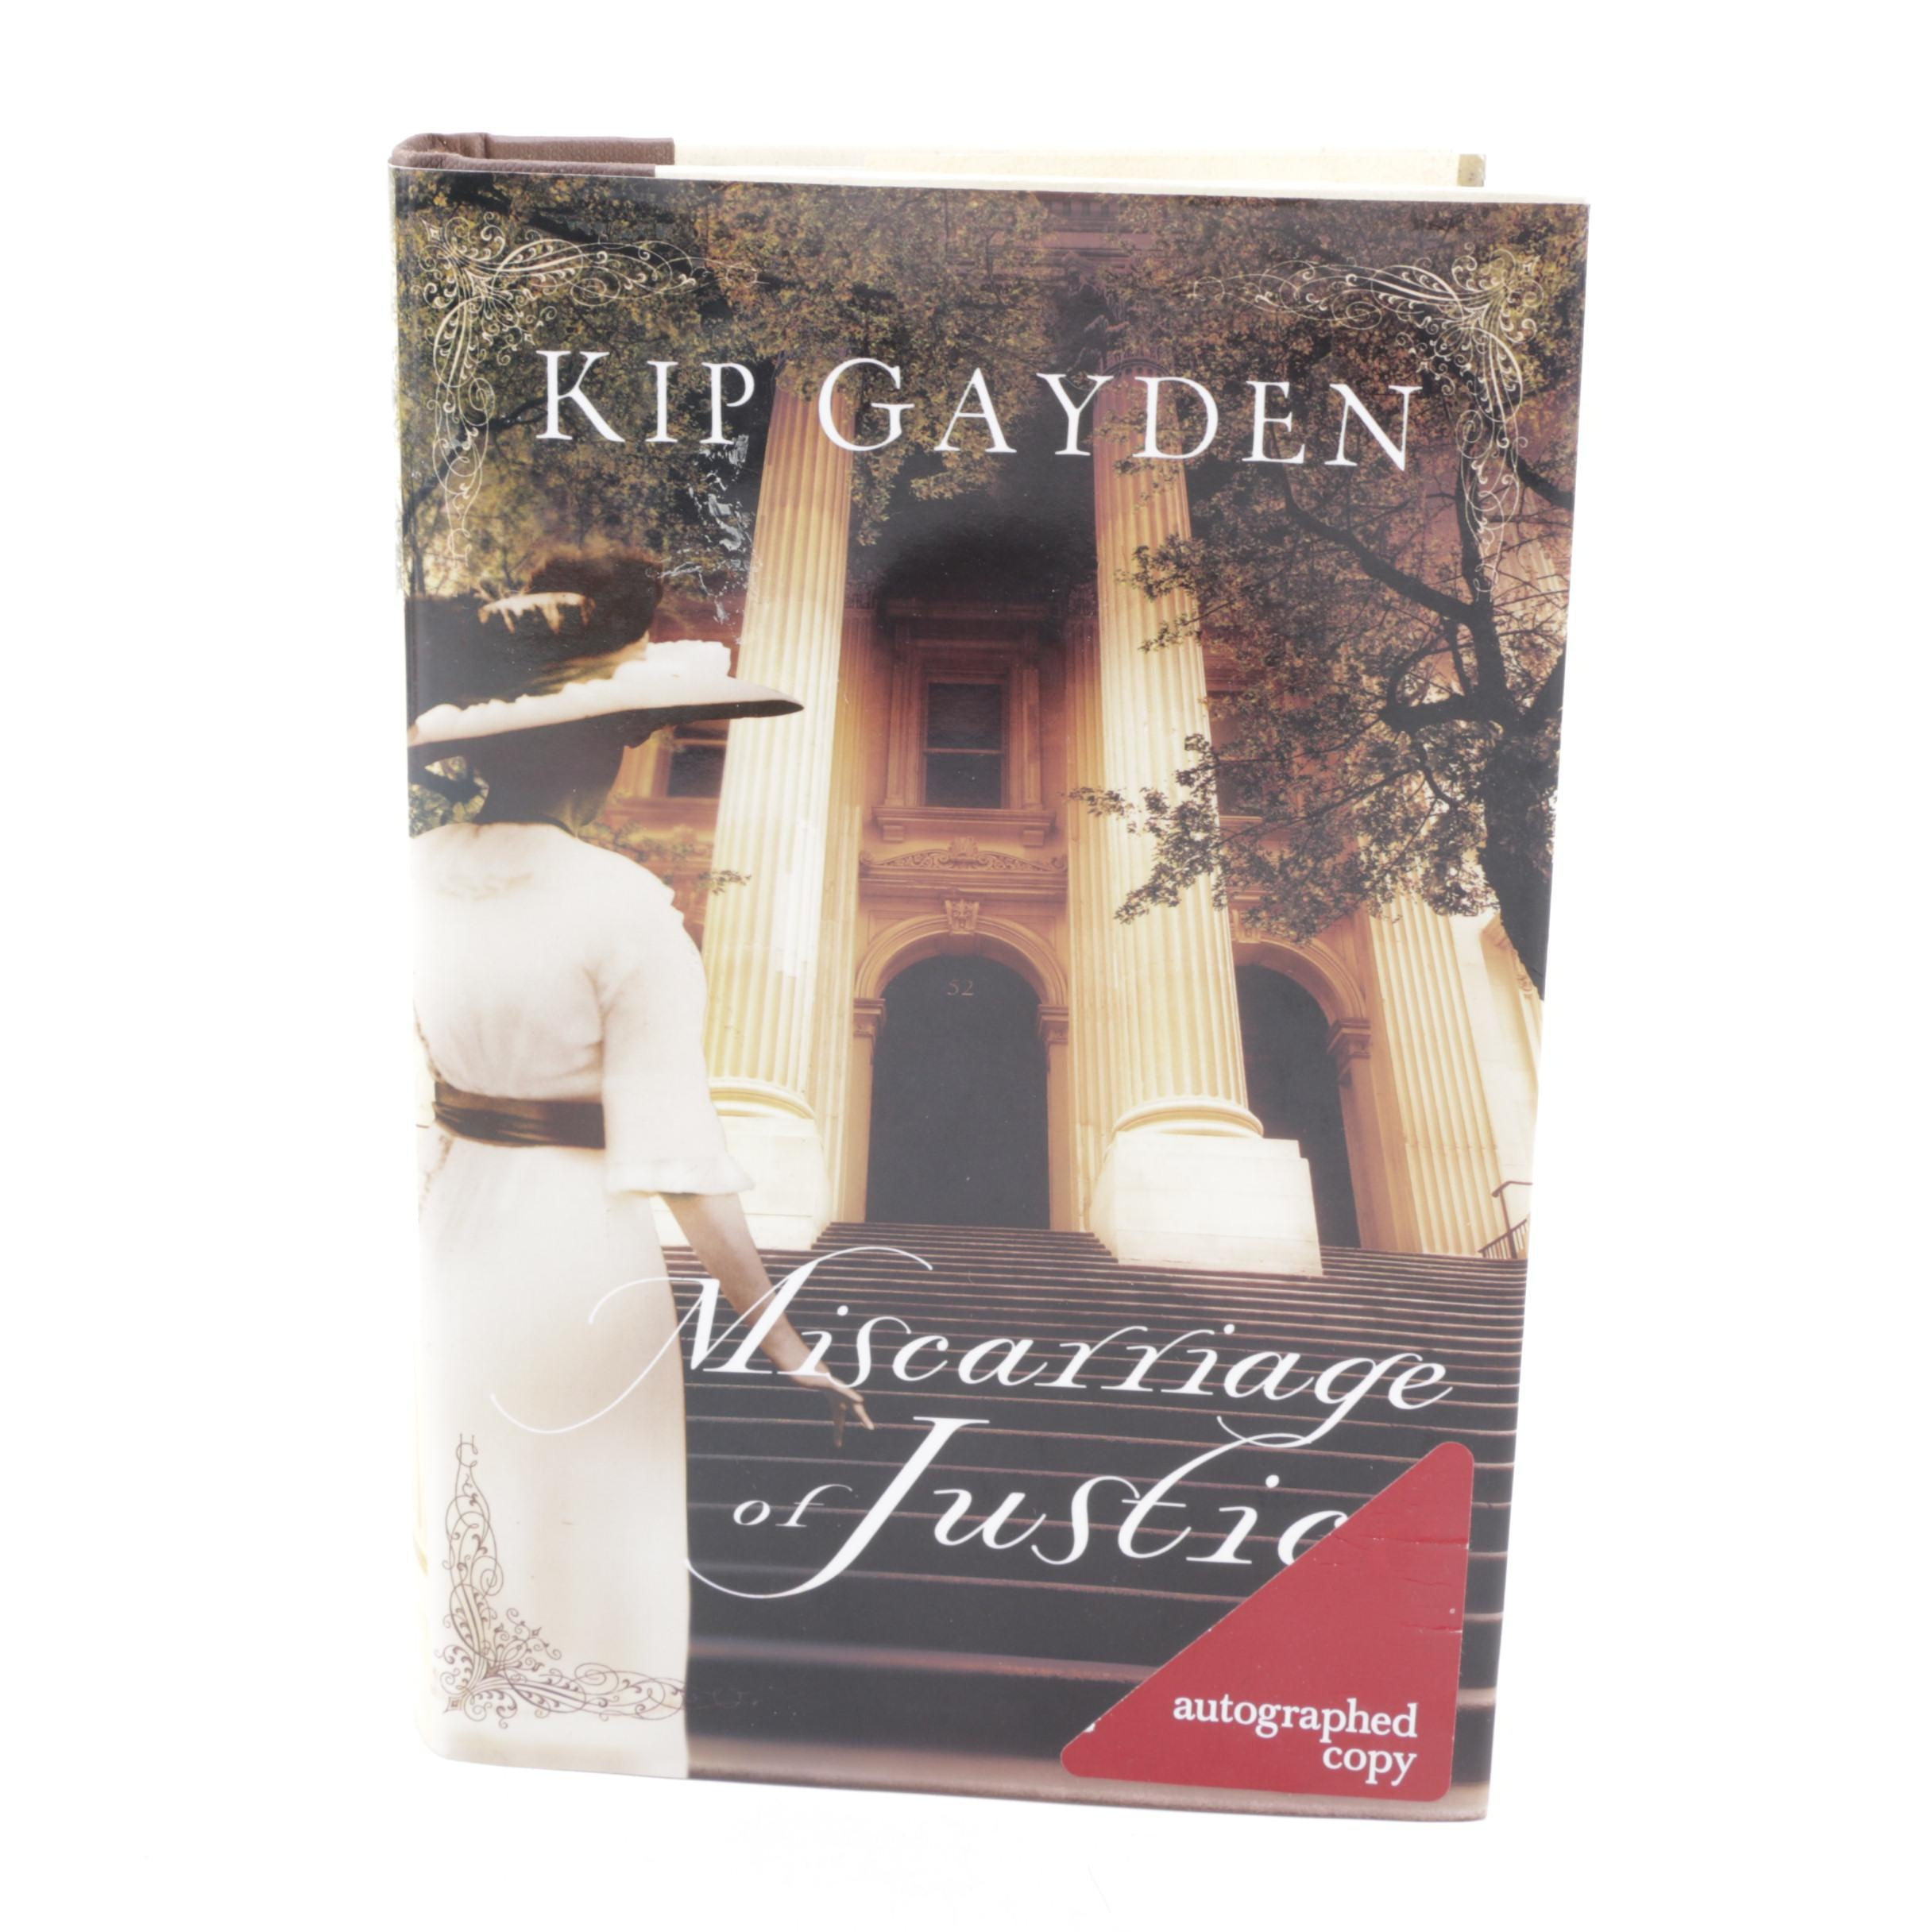 """Kip Gayden Autographed """"Miscarriage of Justice"""""""